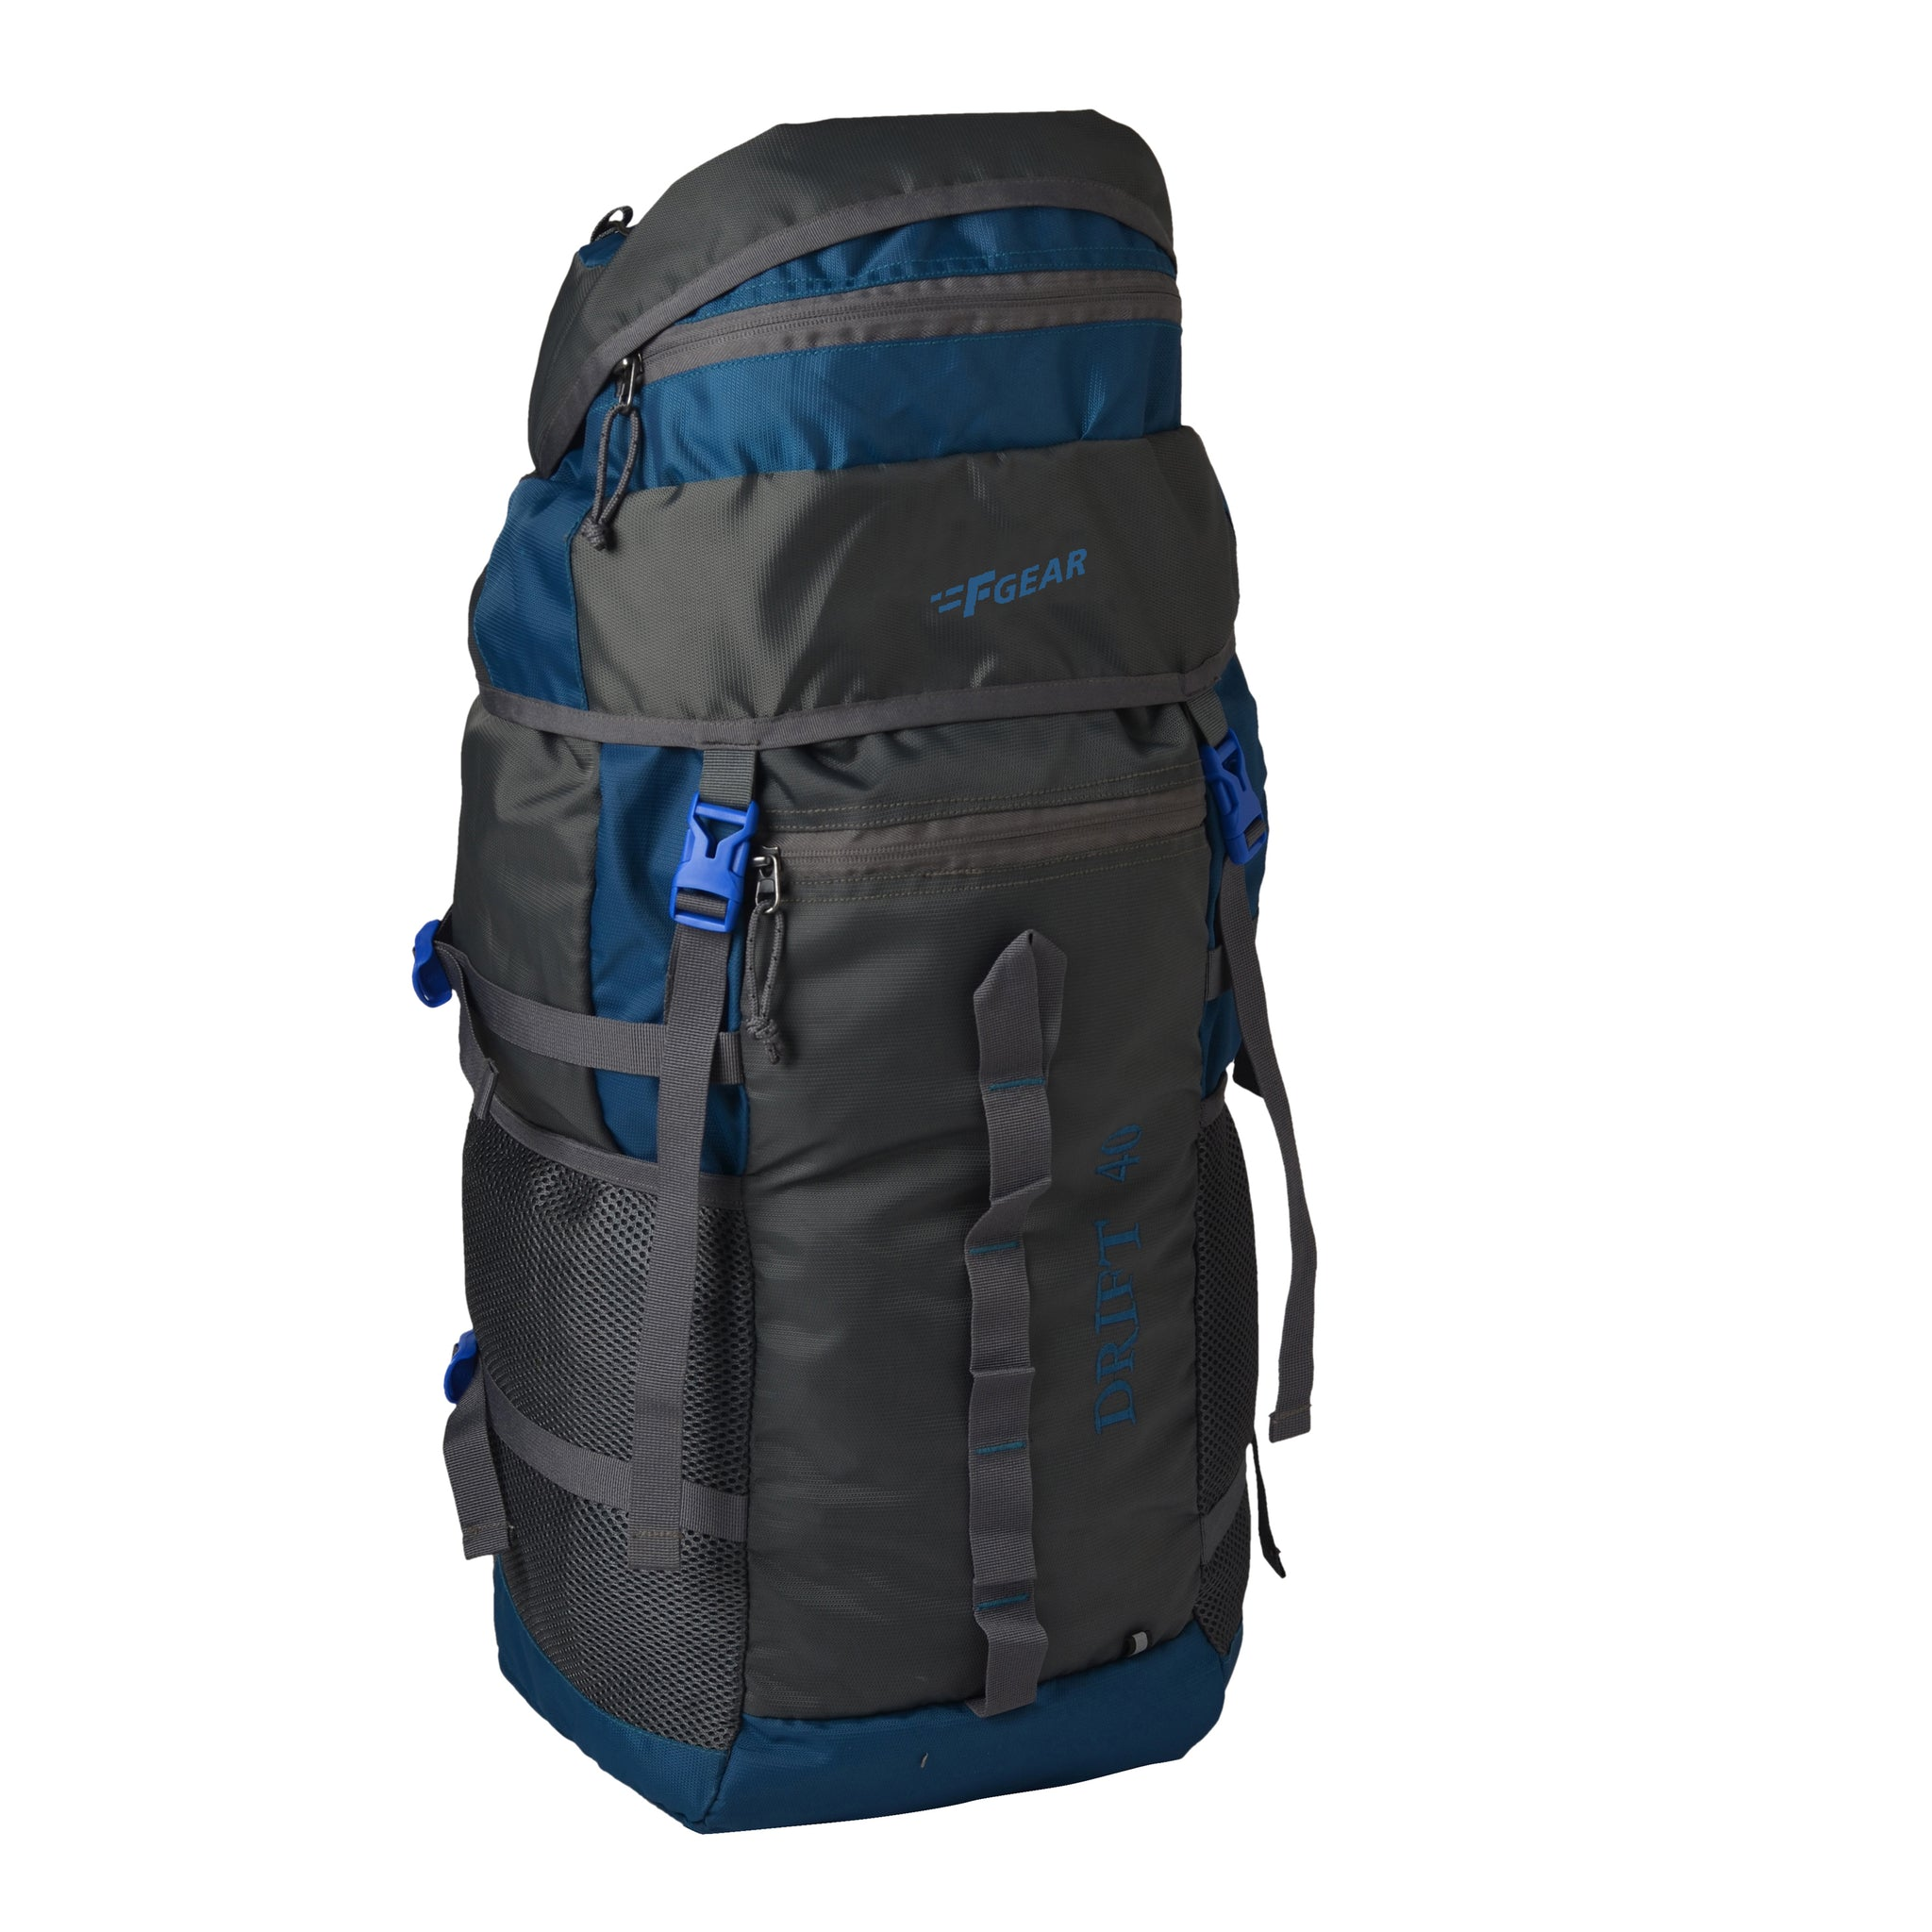 F Gear Drift 40 liter Rucksack (T Blue, Grey)